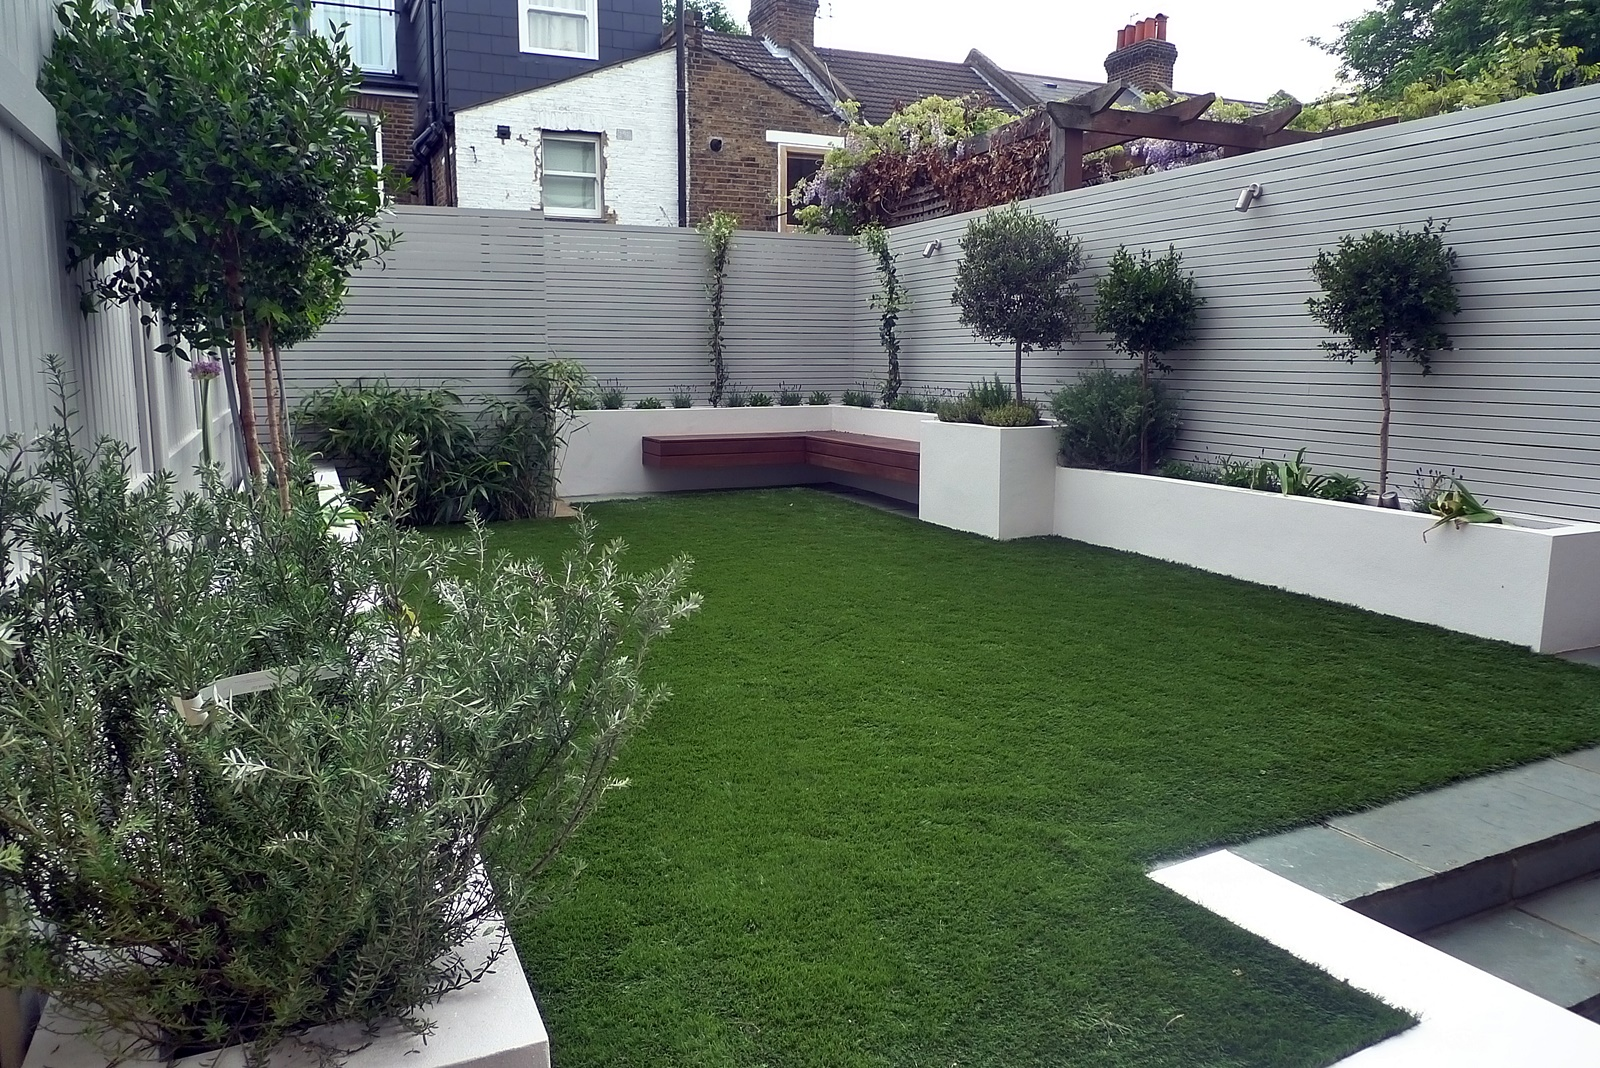 London garden blog london garden blog gardens from for Landscape design ideas